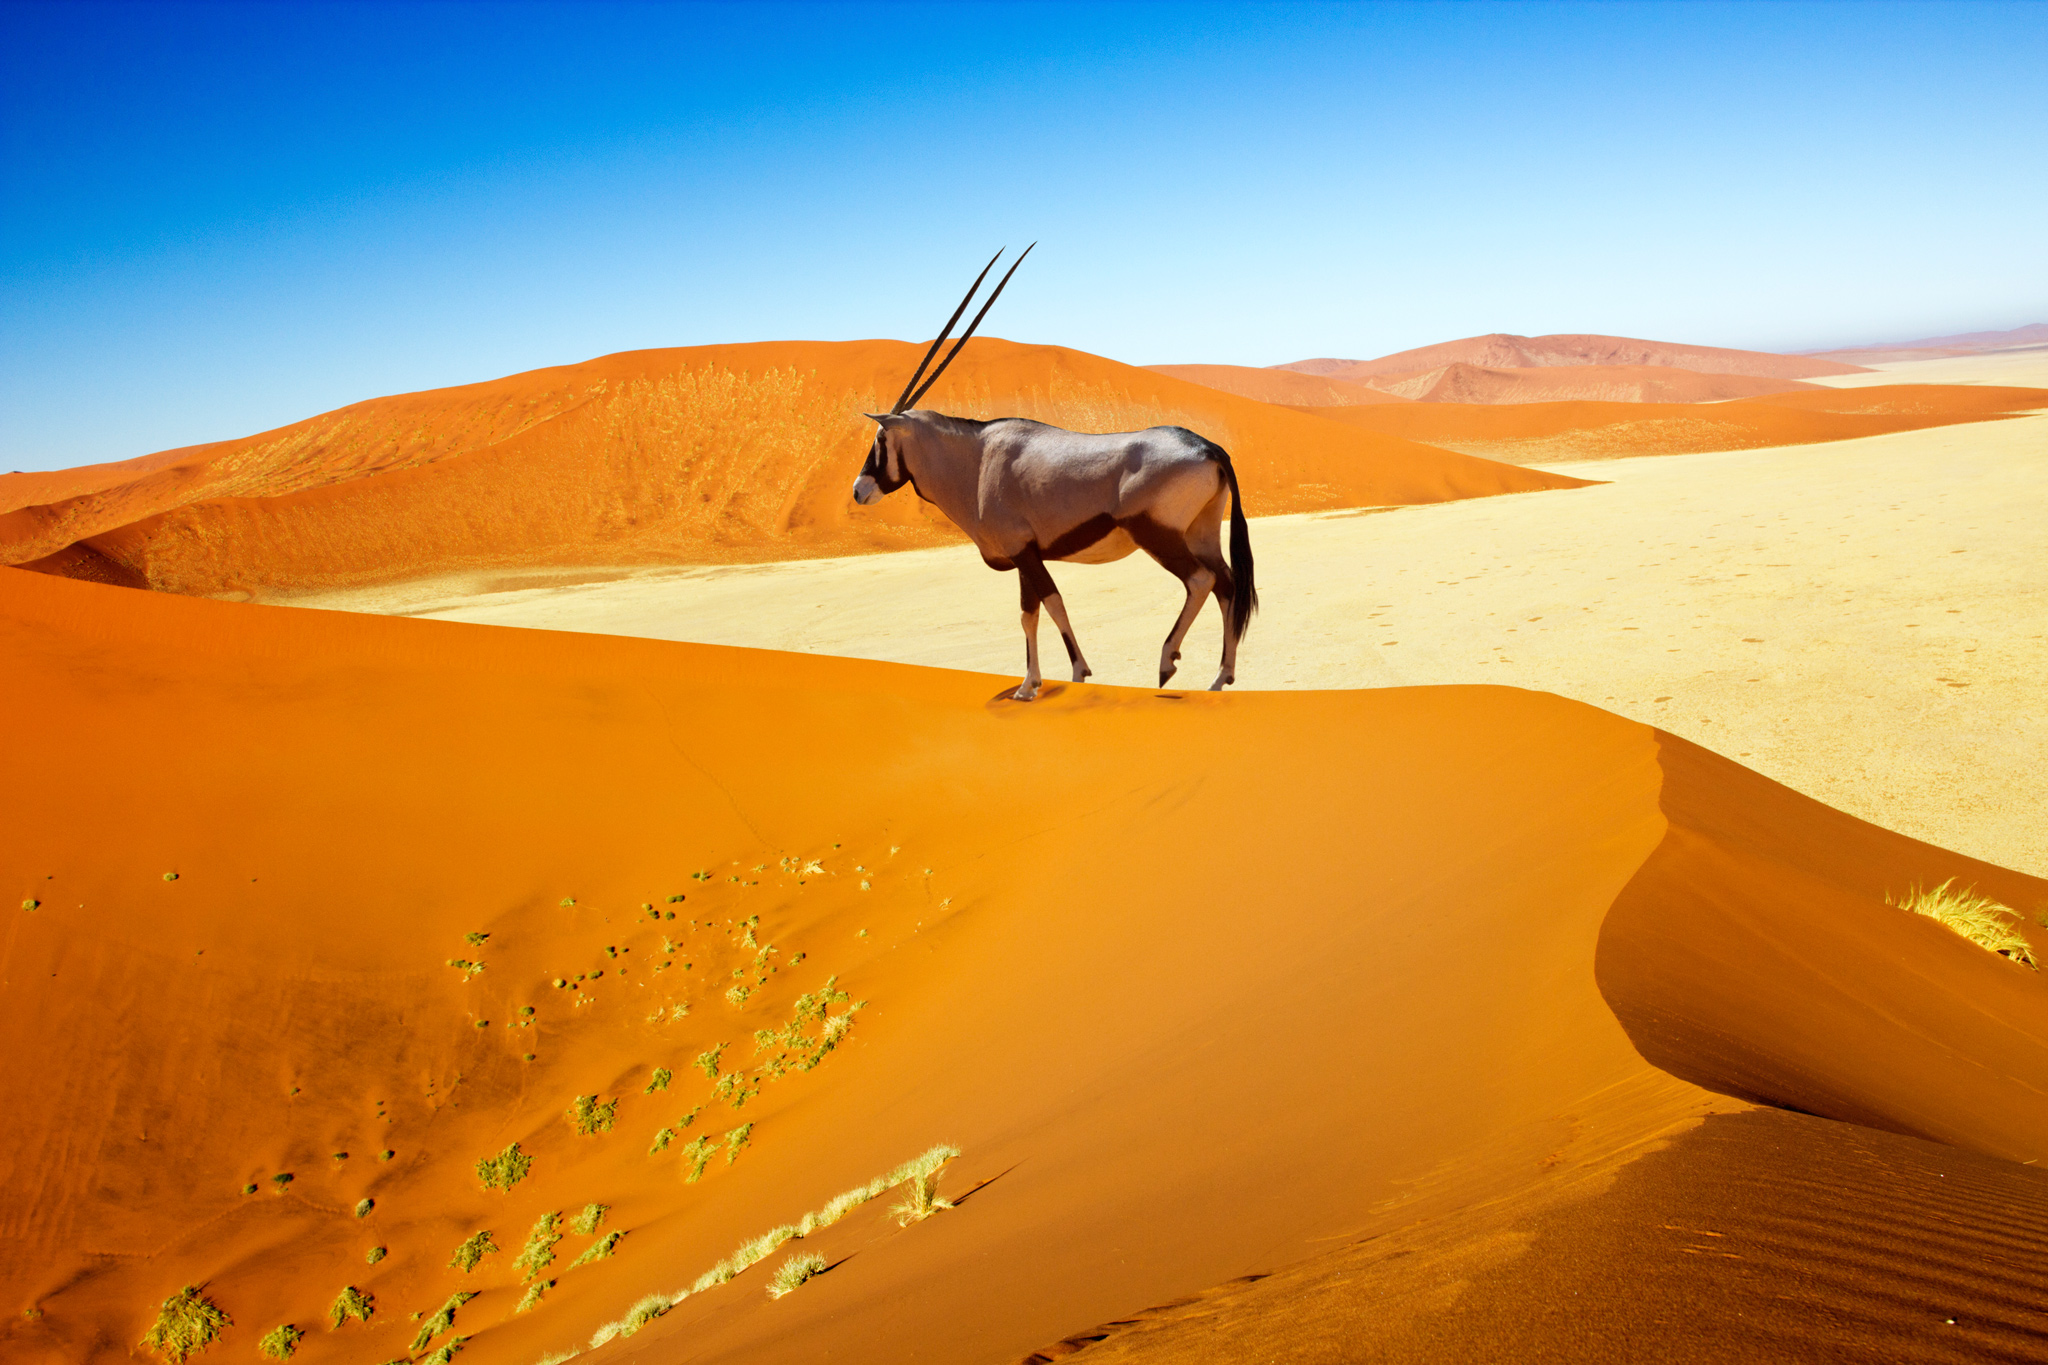 Lone_Oryx_Standing_On_Dune_Namibia